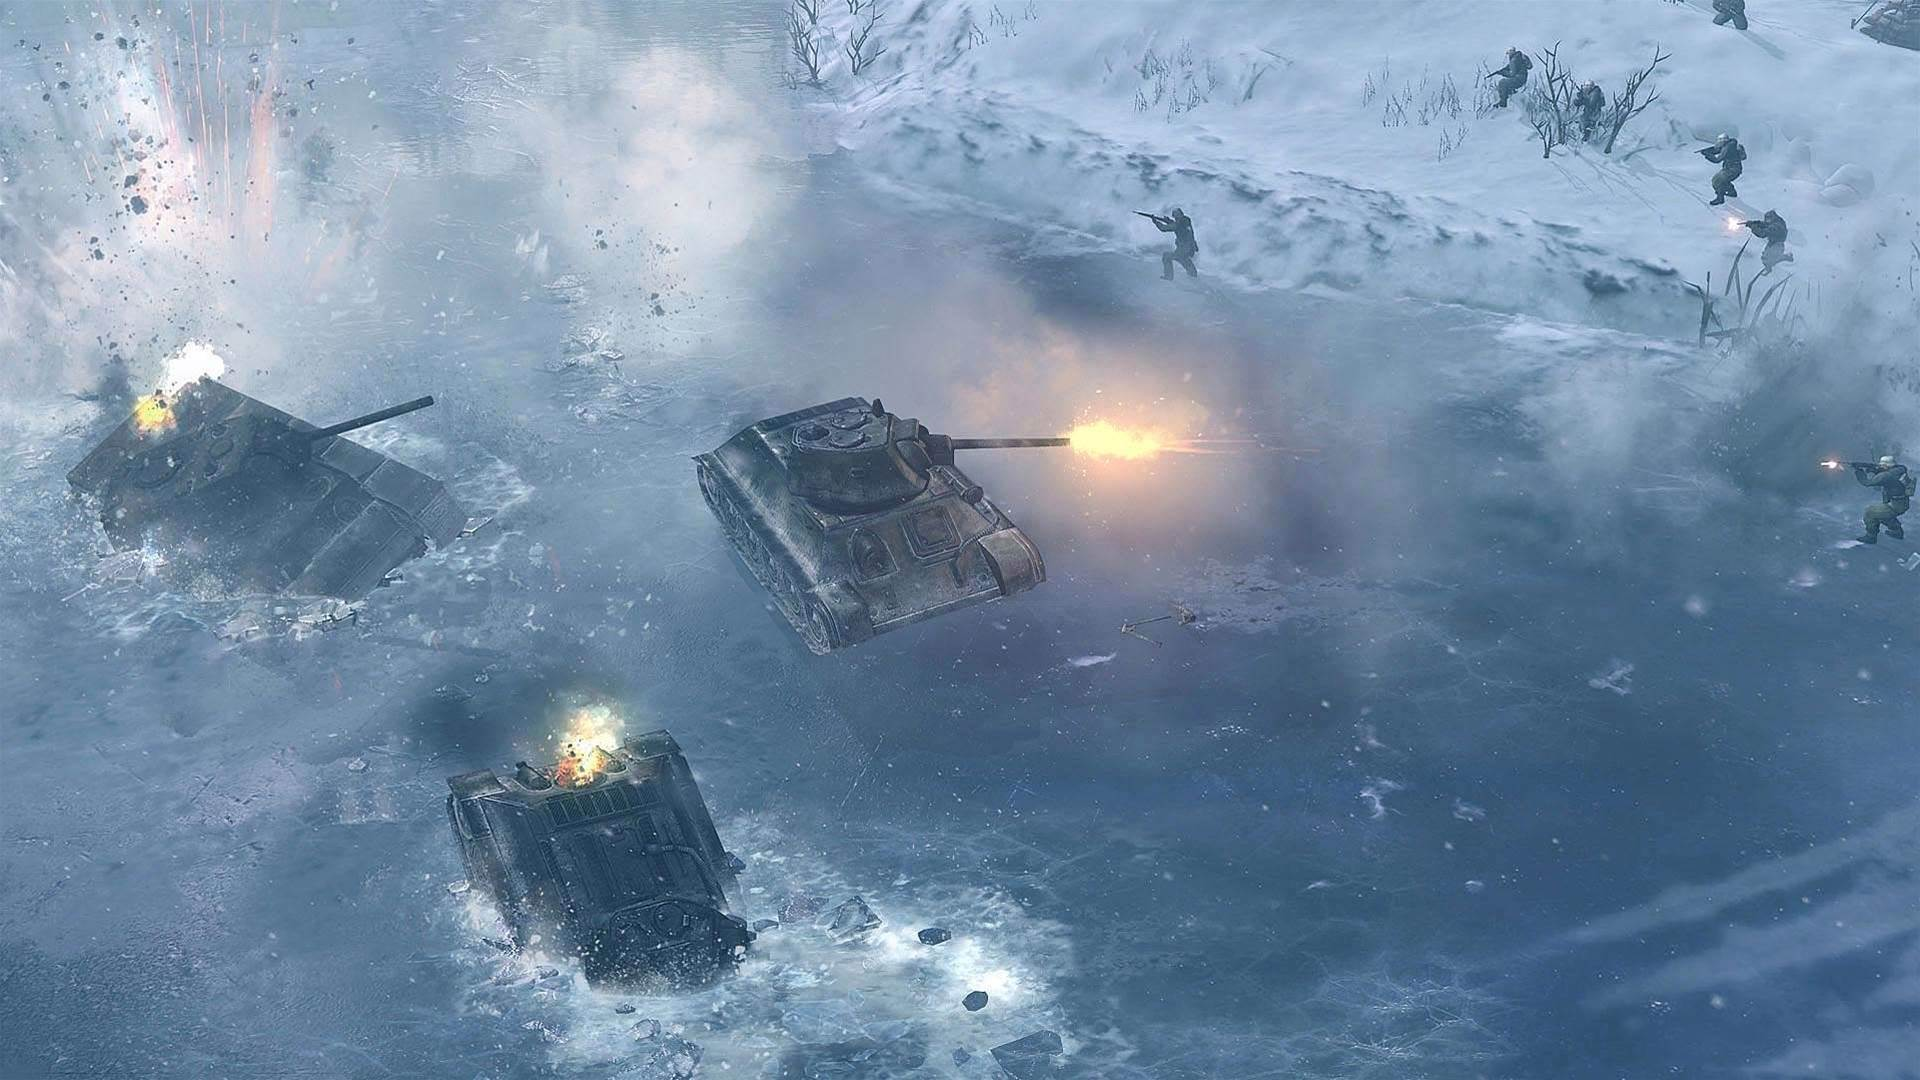 Company of Heroes 2 preview - the cold that kills